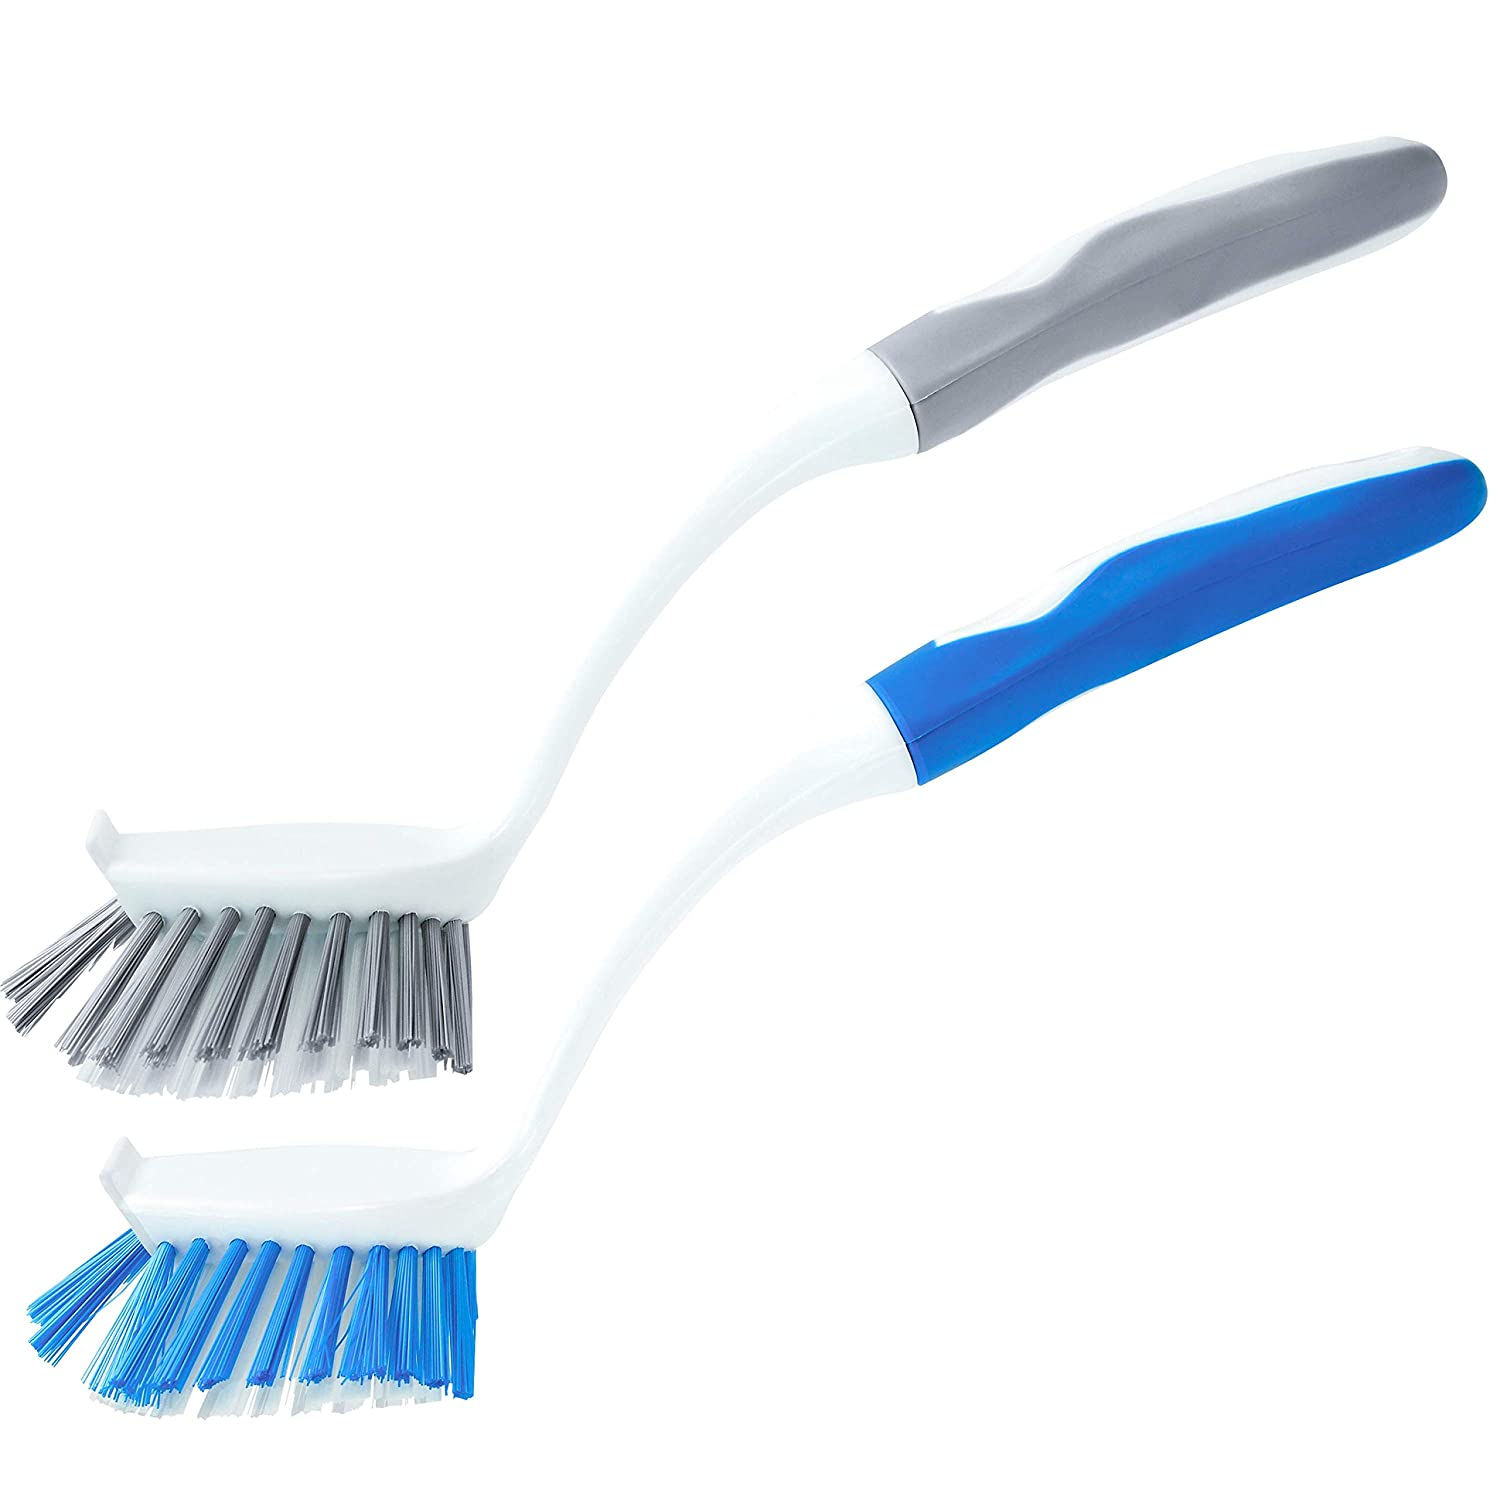 S&T 449801 Kitchen Dish Brushes - Scraper Edge, Comfortable Rubberized Grip - Grey/Blue, 2pk Schroeder & Tremayne Inc.